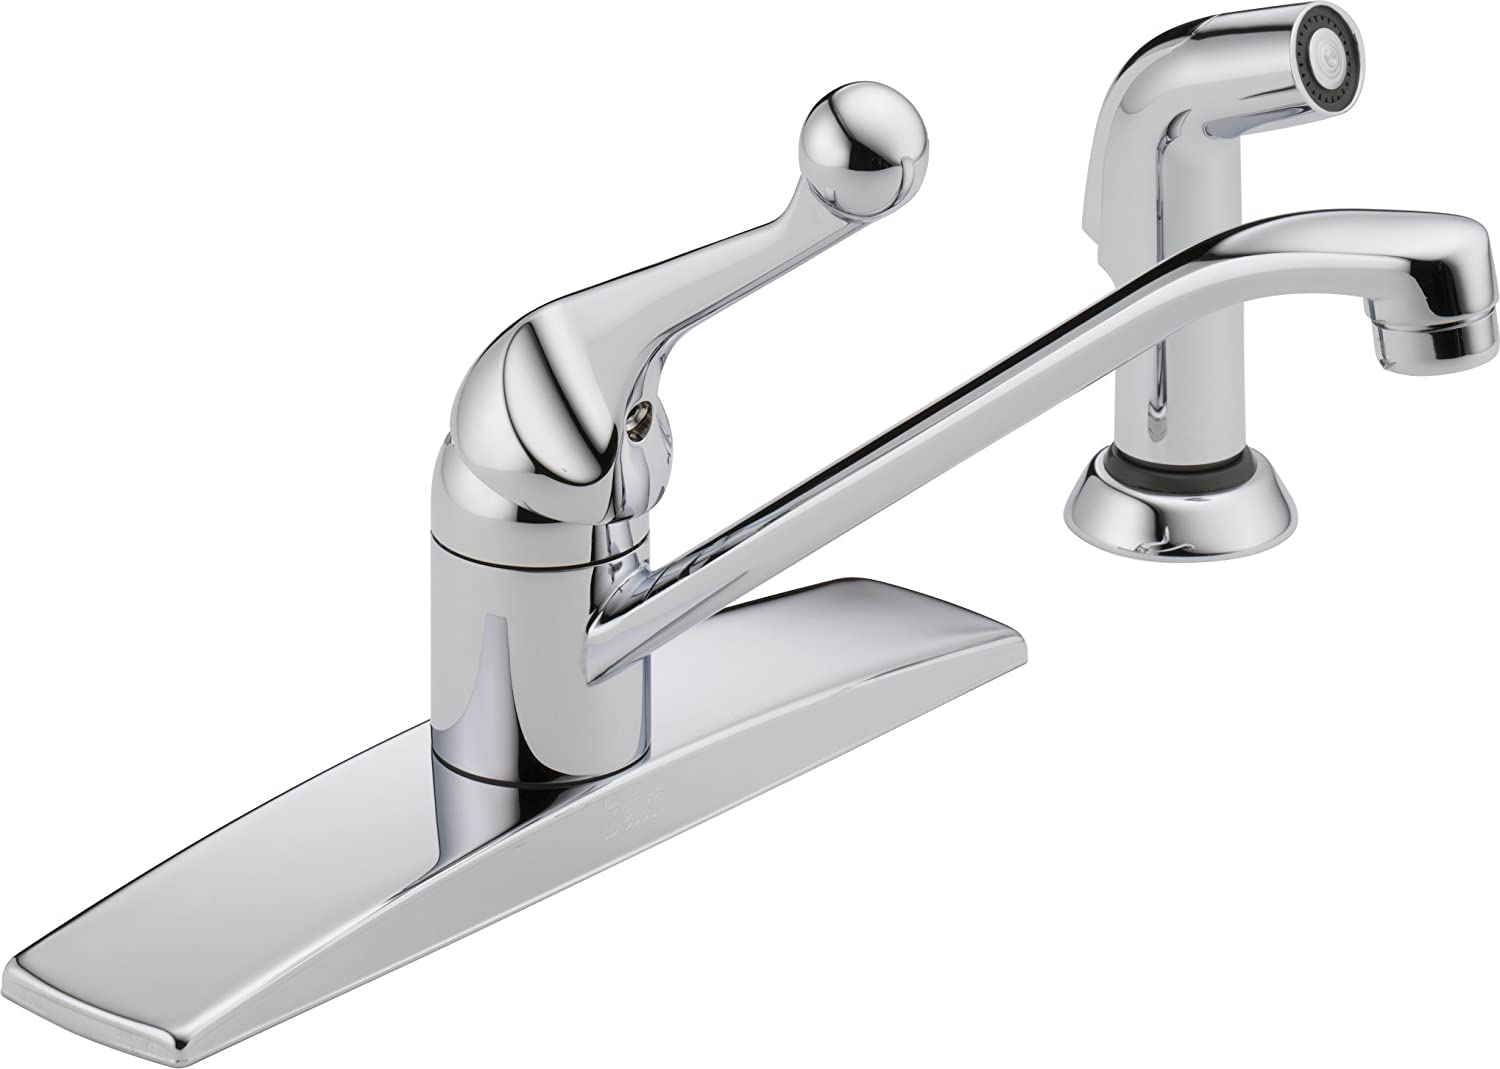 faucet down delta single in sprayer stainless p handle dst pull kitchen ss izak faucets